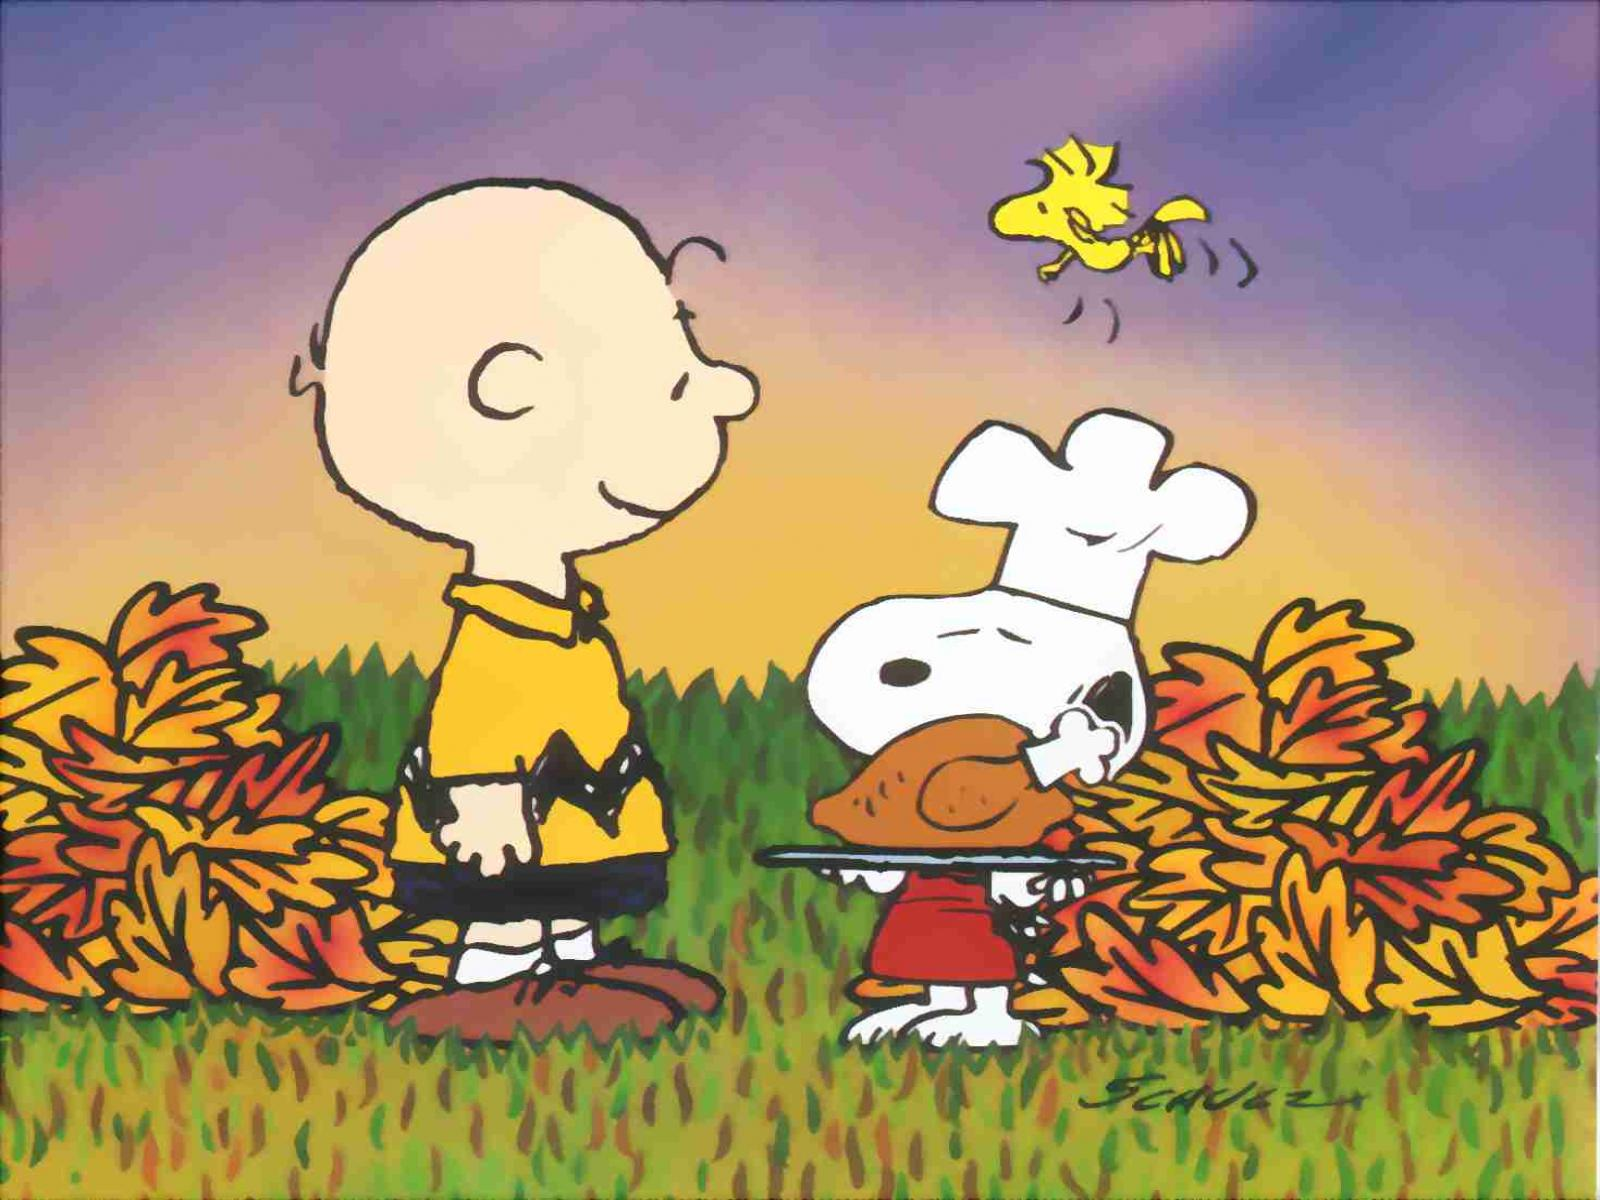 Peanuts Snoopy Charlie Brown Thanksgiving Wallpaper 1600x1200